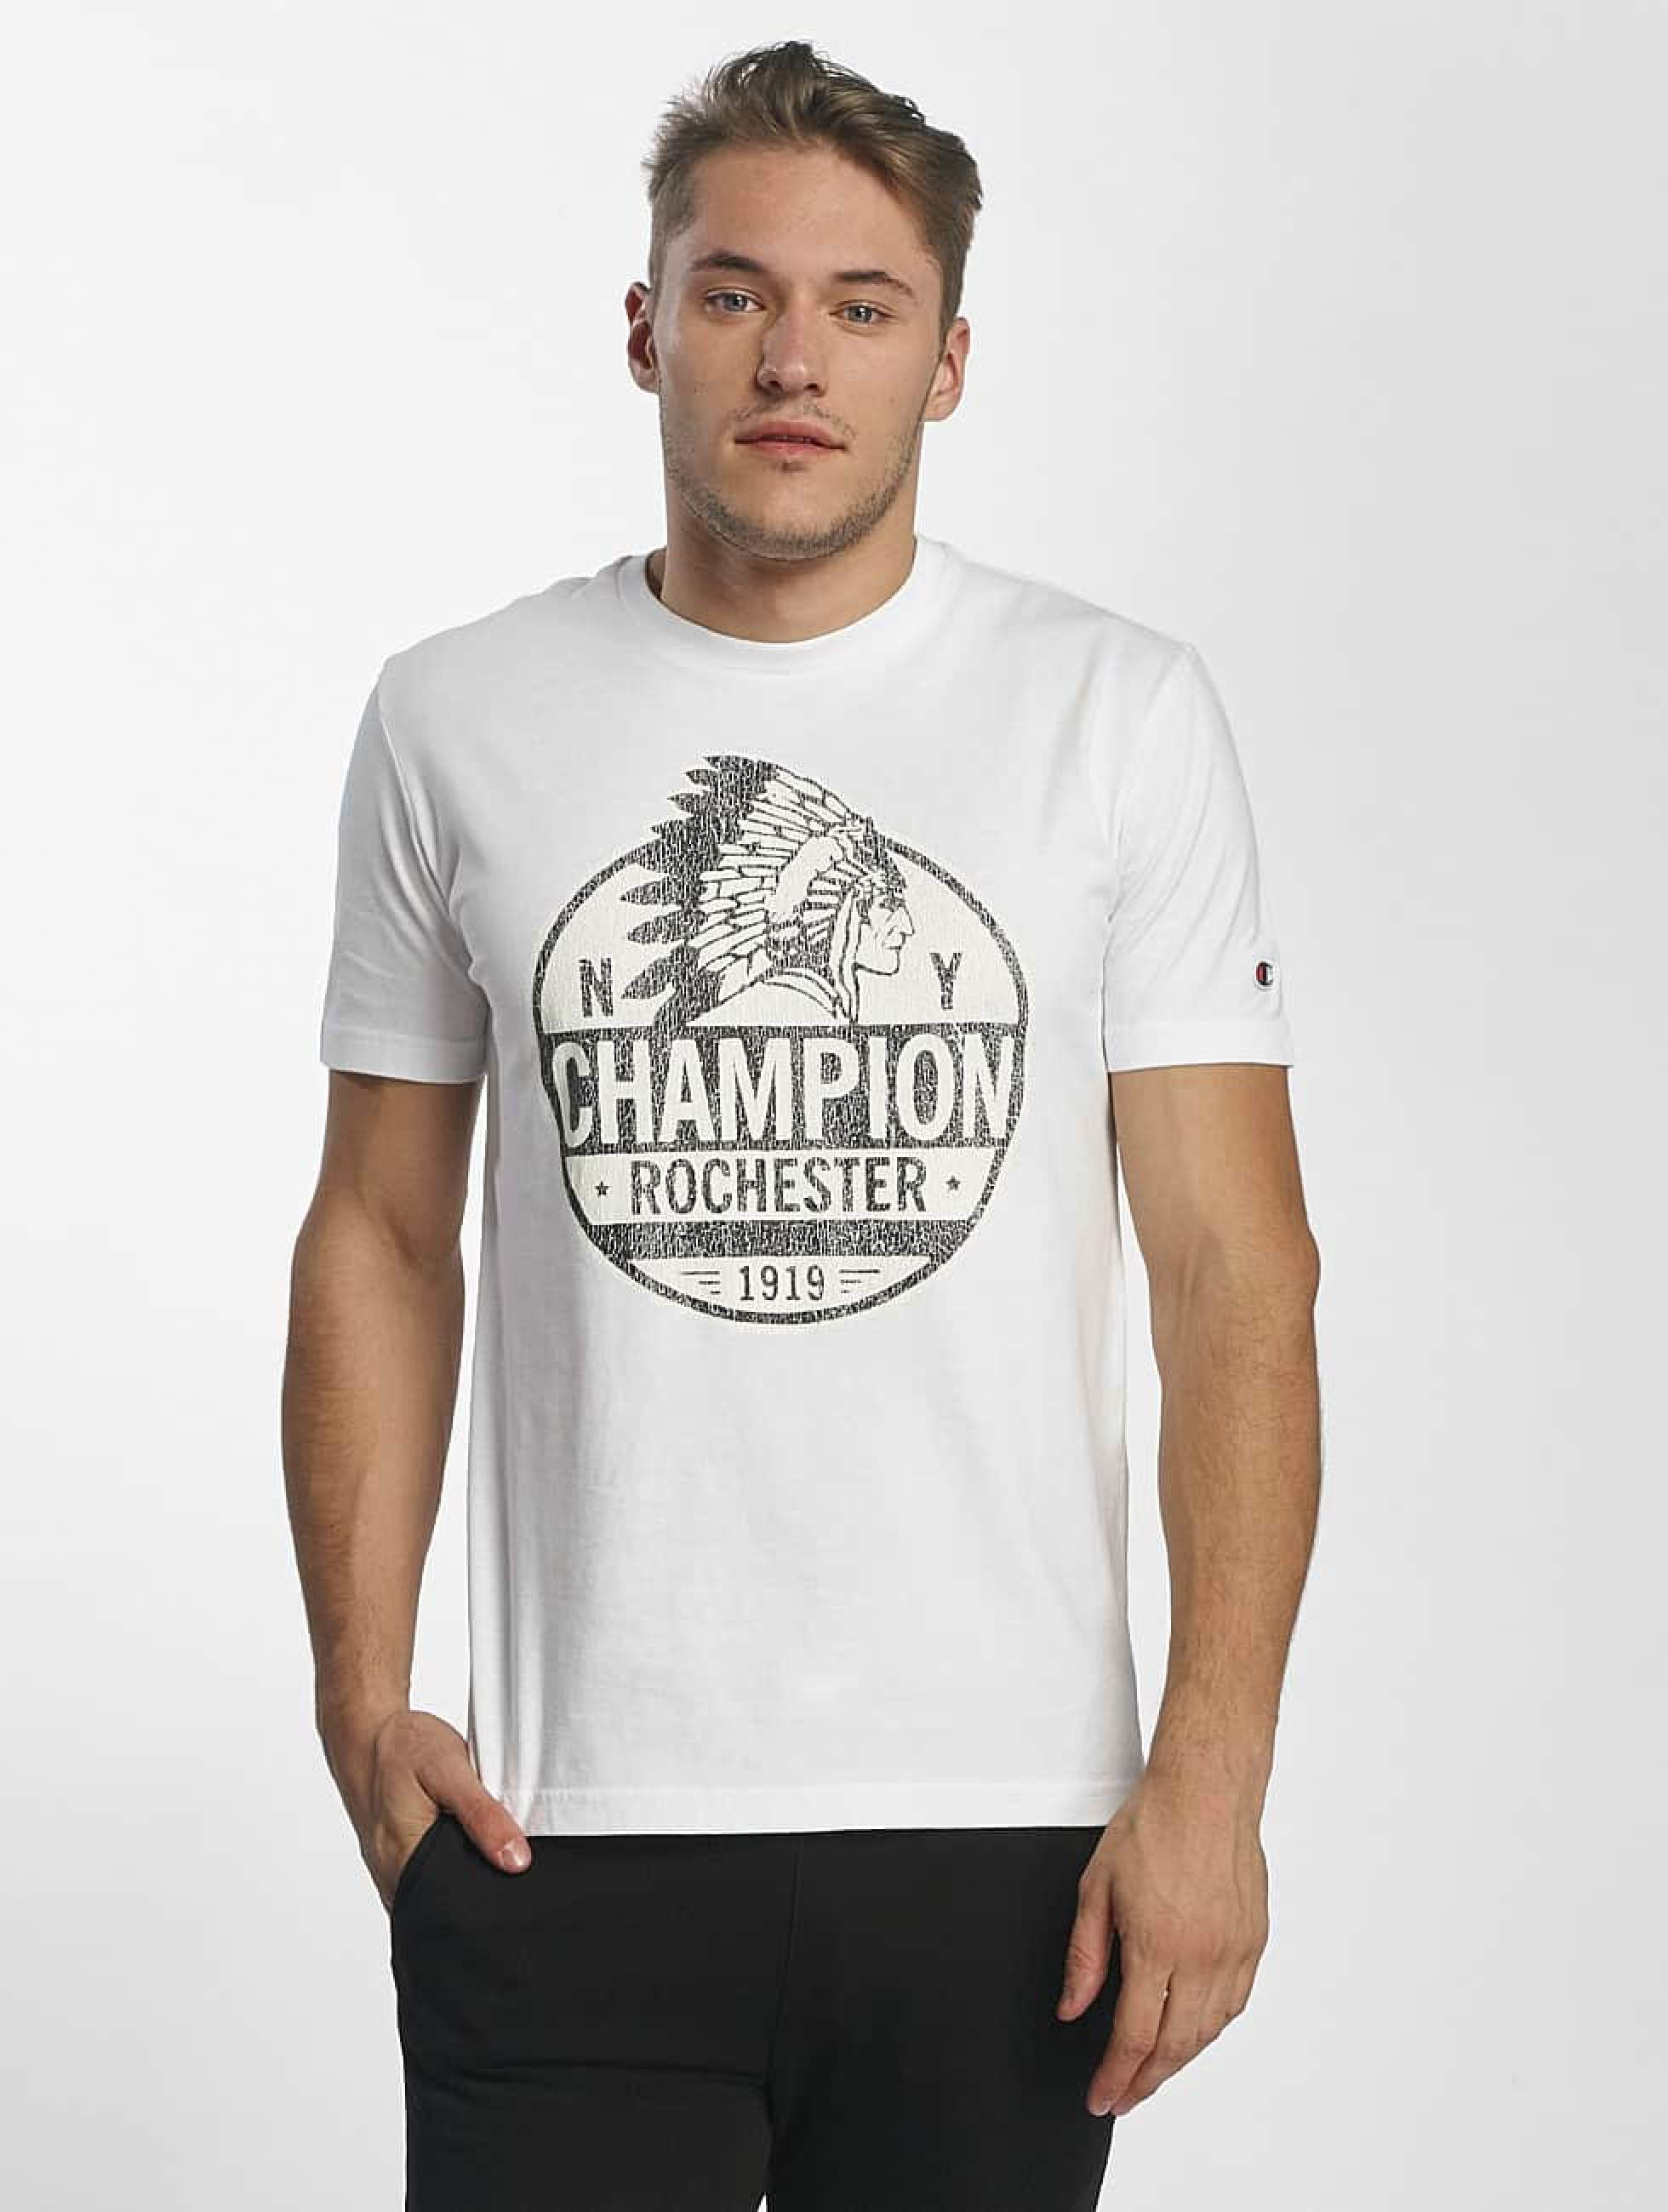 Champion Athletics Männer T-Shirt Rockefeller in weiß